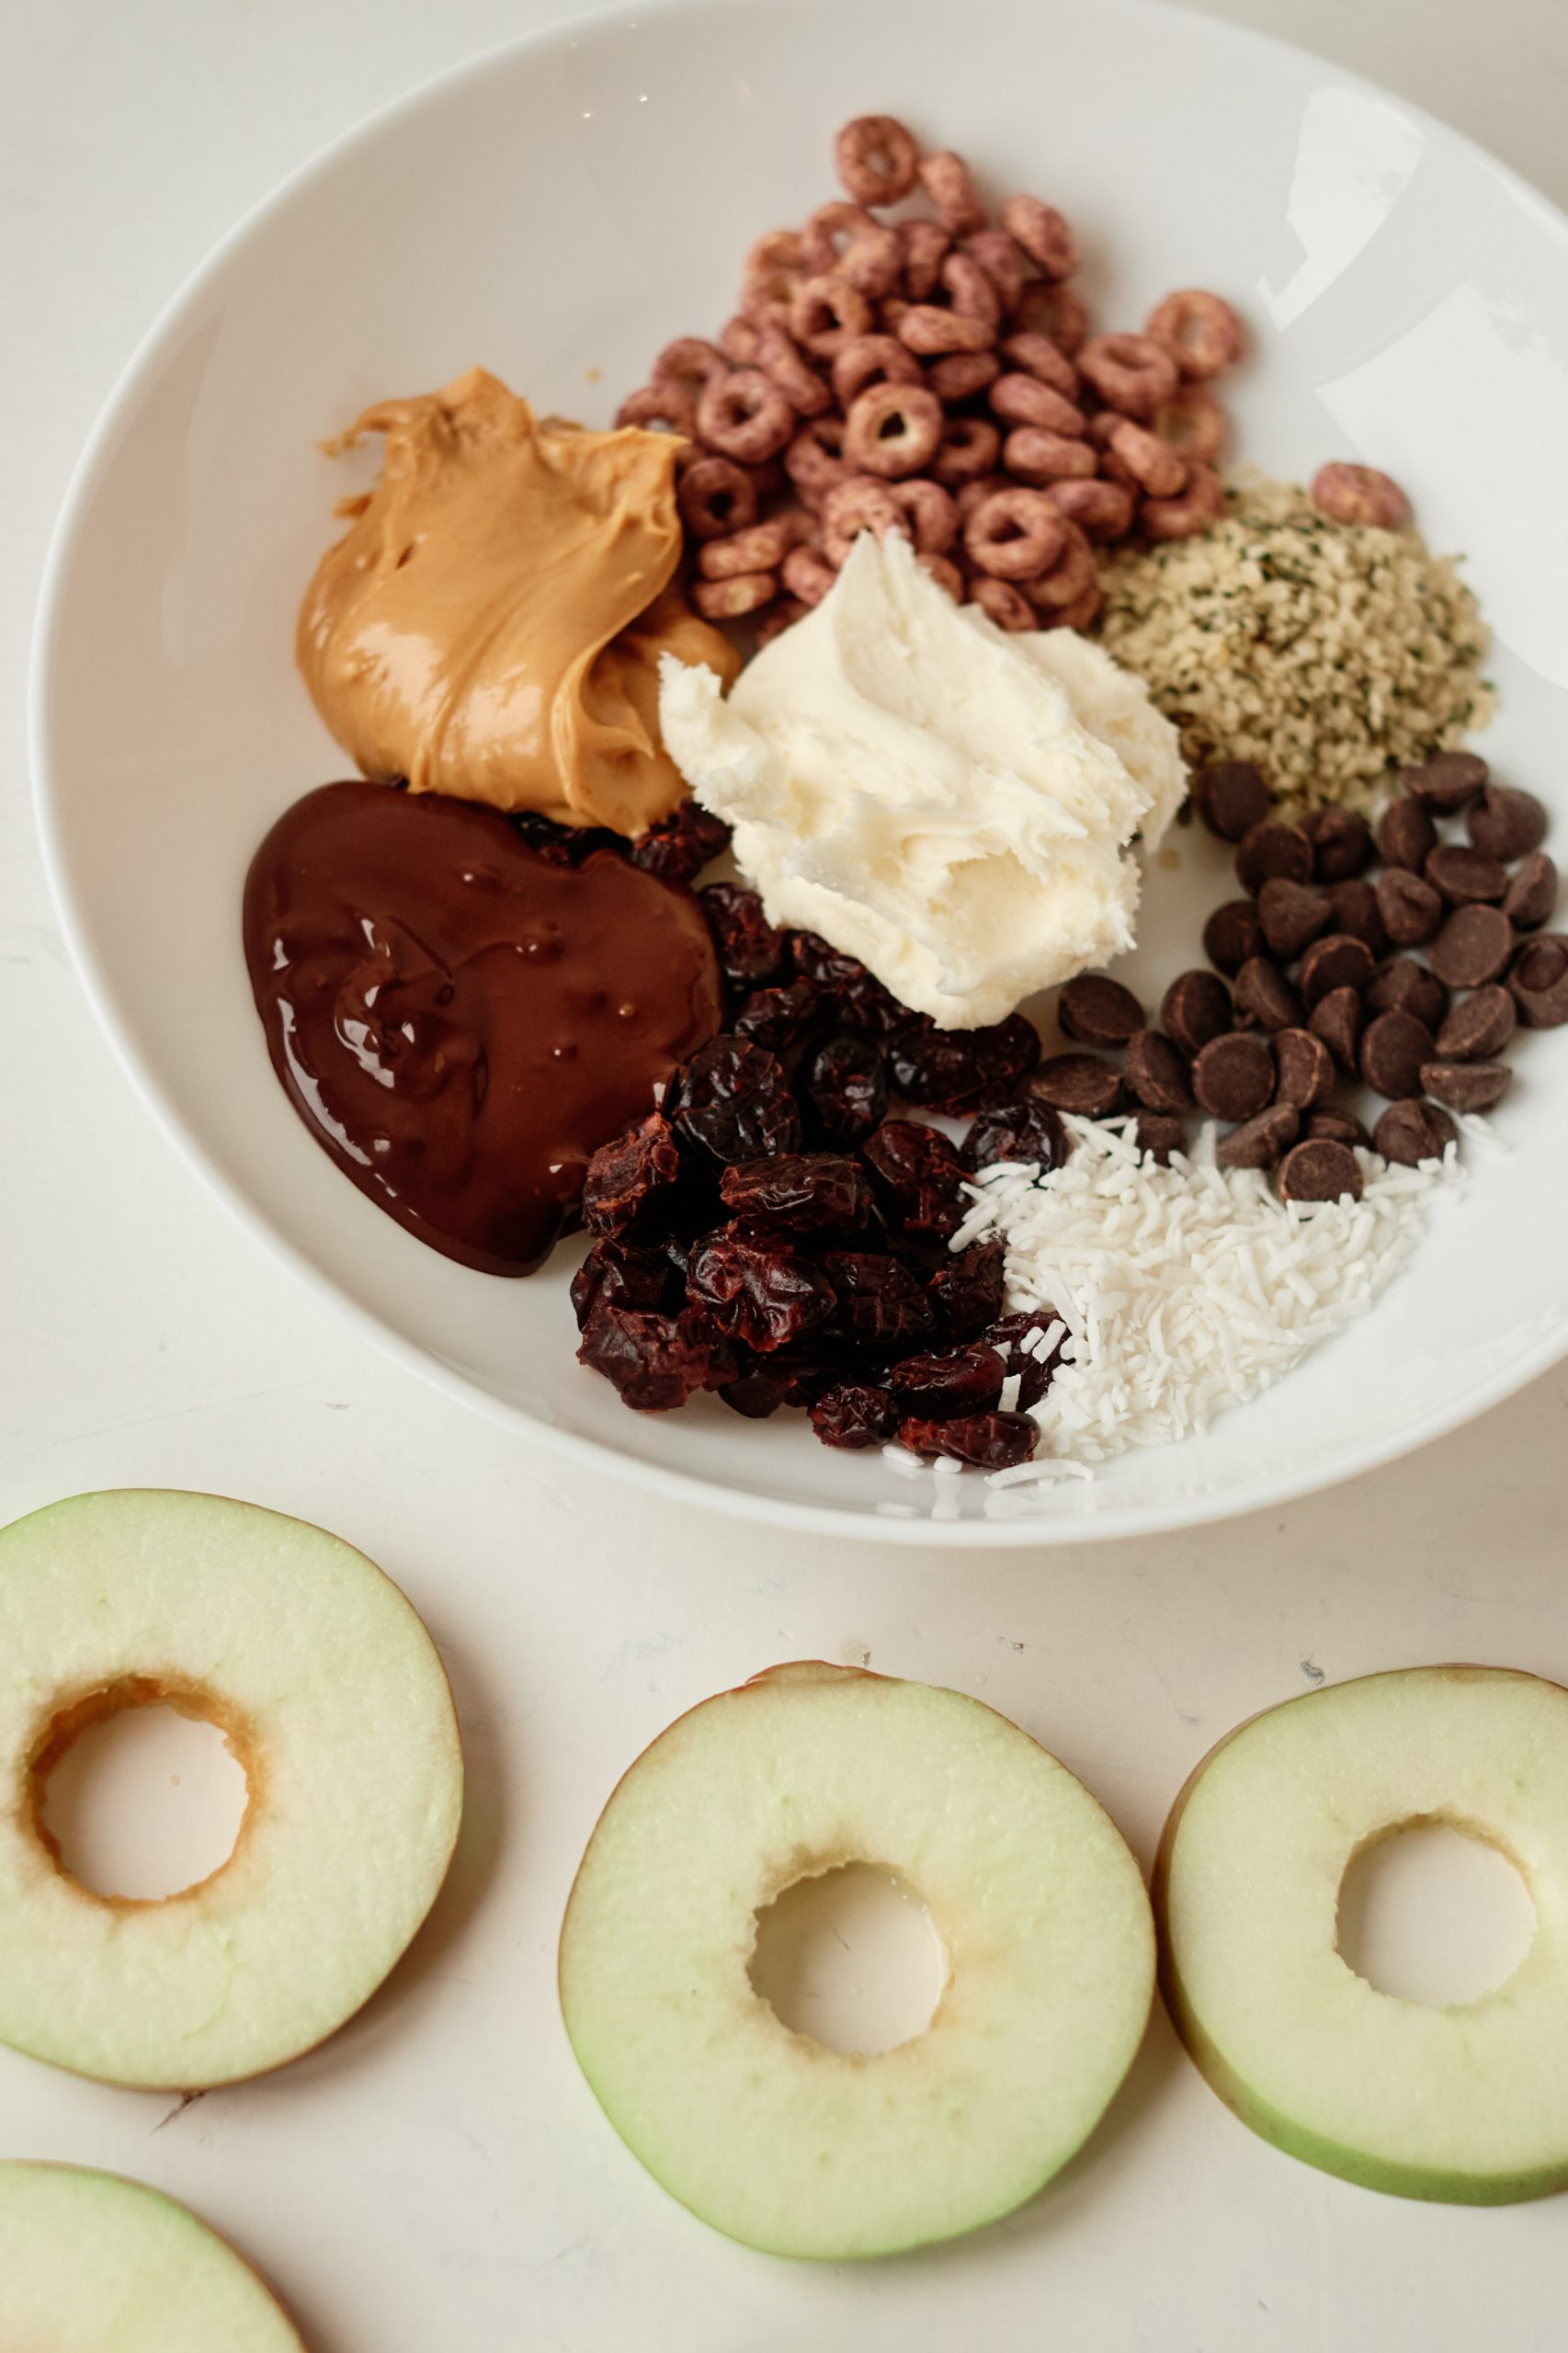 a plate full of possible toppings for apple donuts